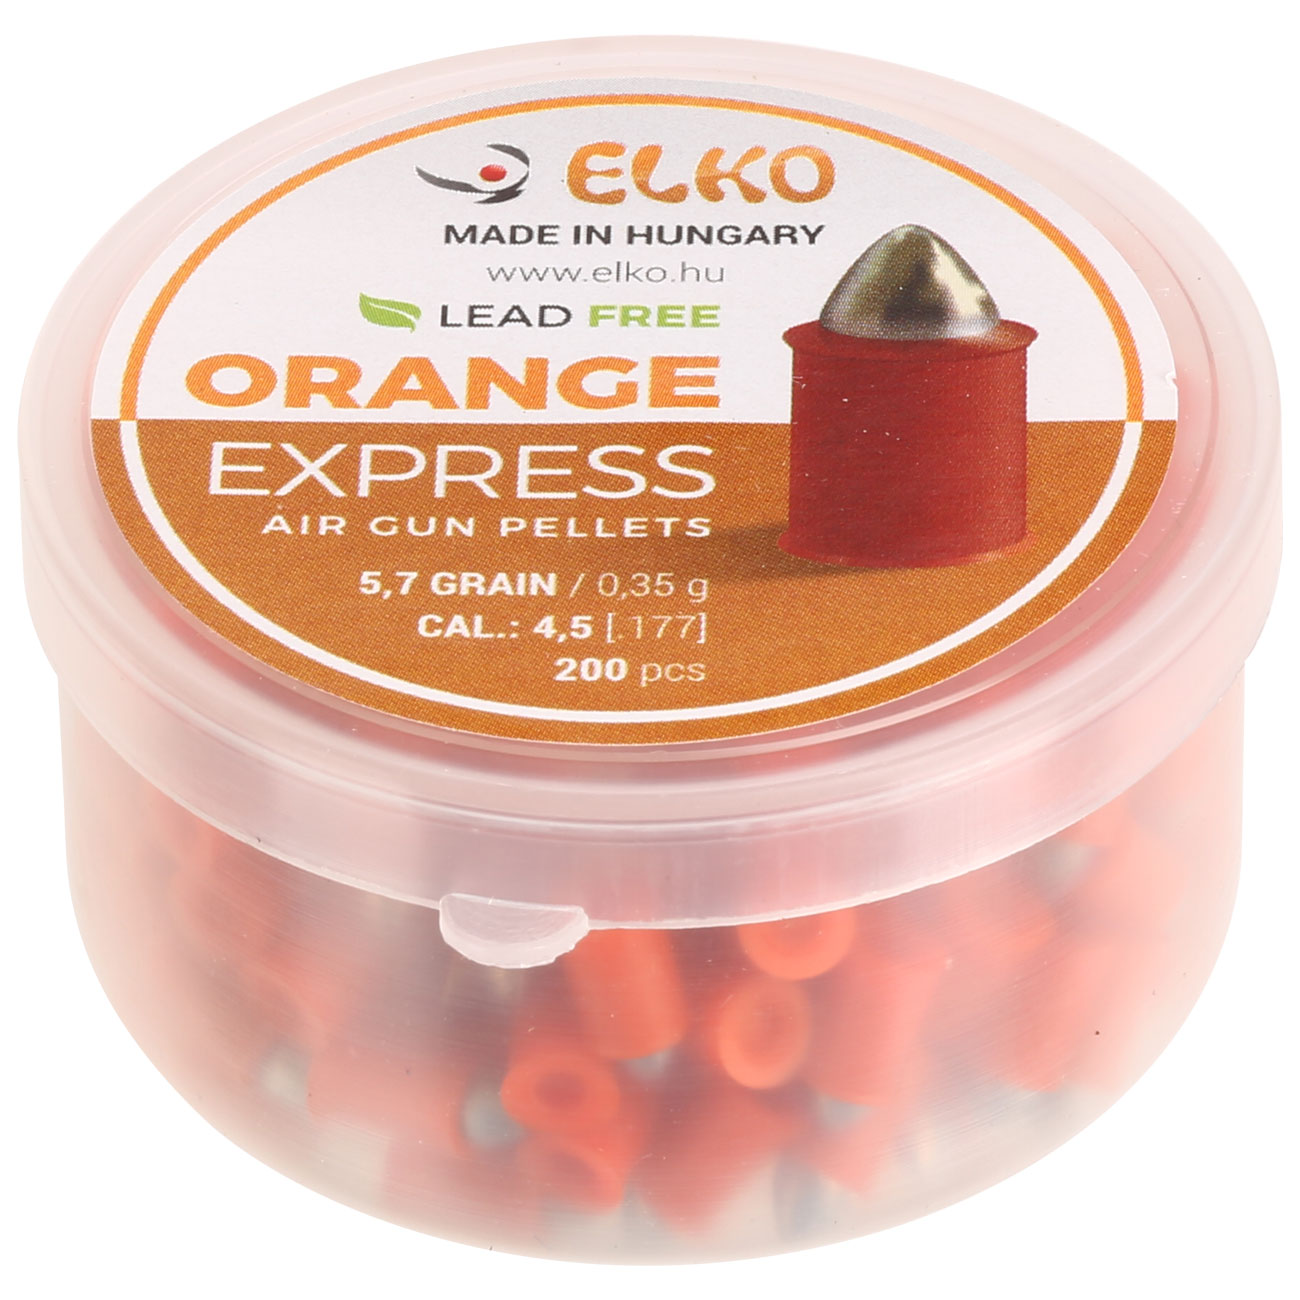 Elko Spitzkopf-Diabolos Orange Express Kal. 4,5 mm 200er Dose 1